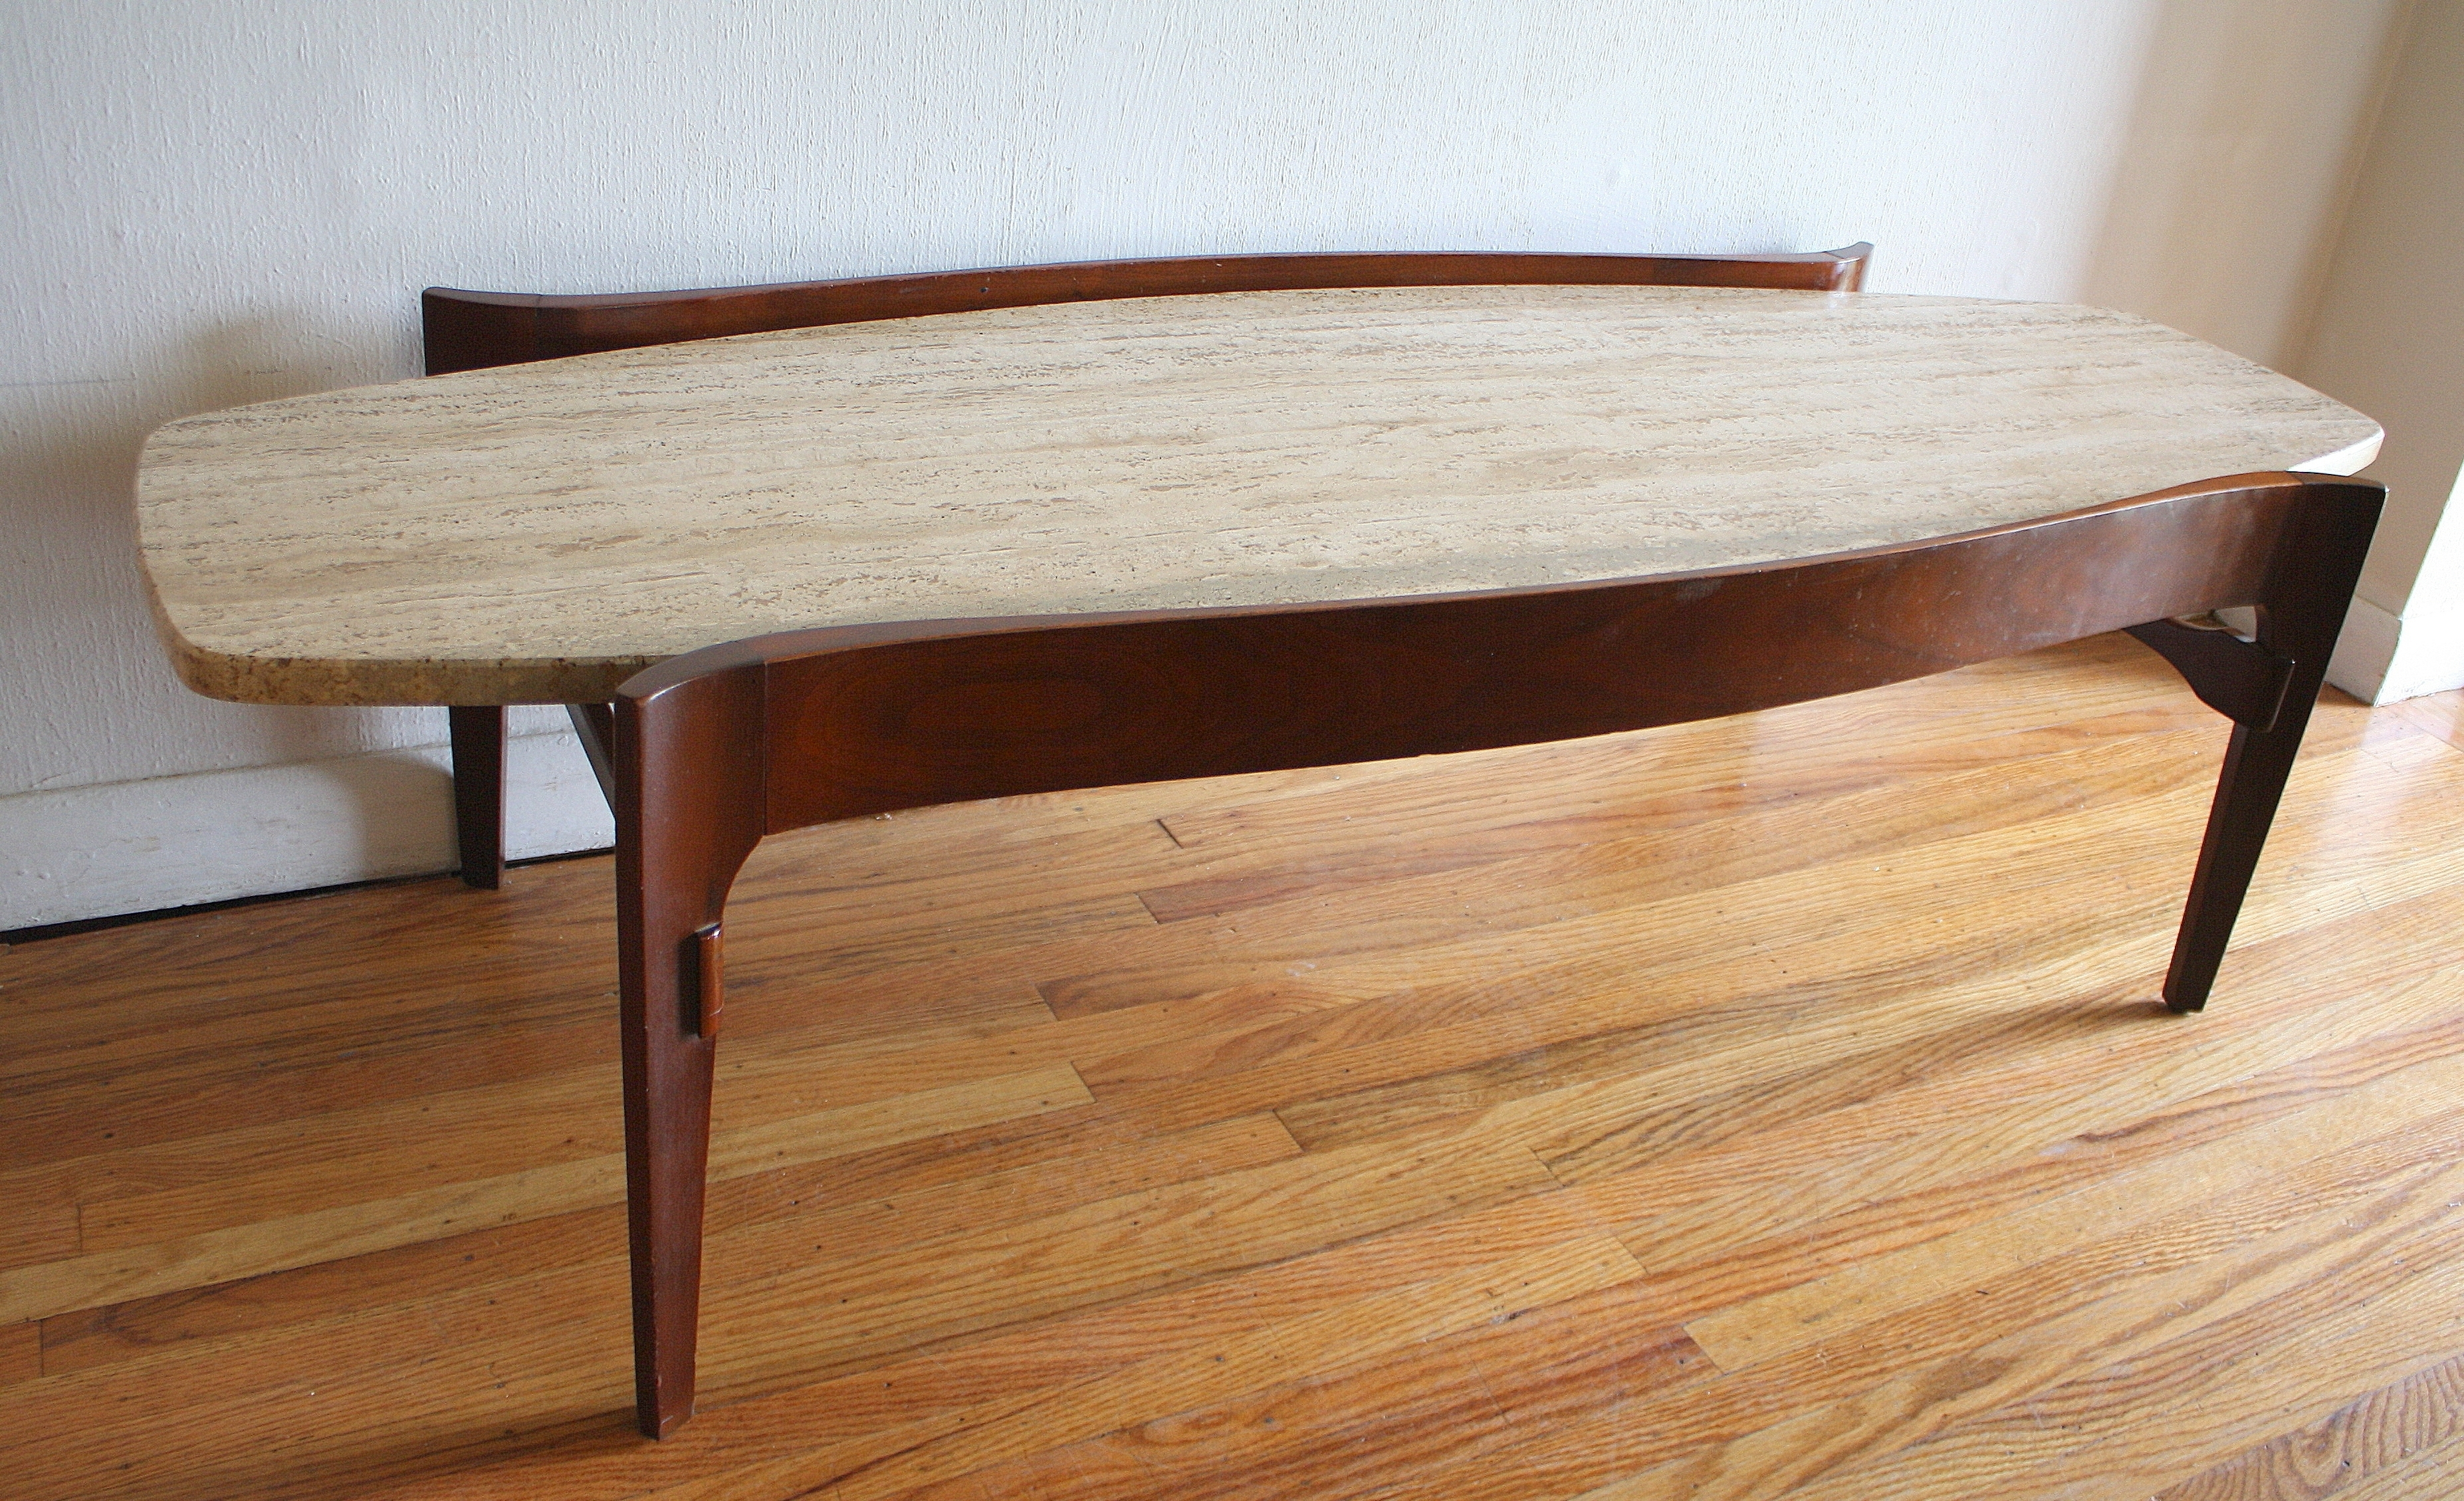 Favorite Mid Century Modern Marble Coffee Tables Regarding Furniture: Mid Century Modern Surfboard Coffee Table With Floating (View 5 of 20)